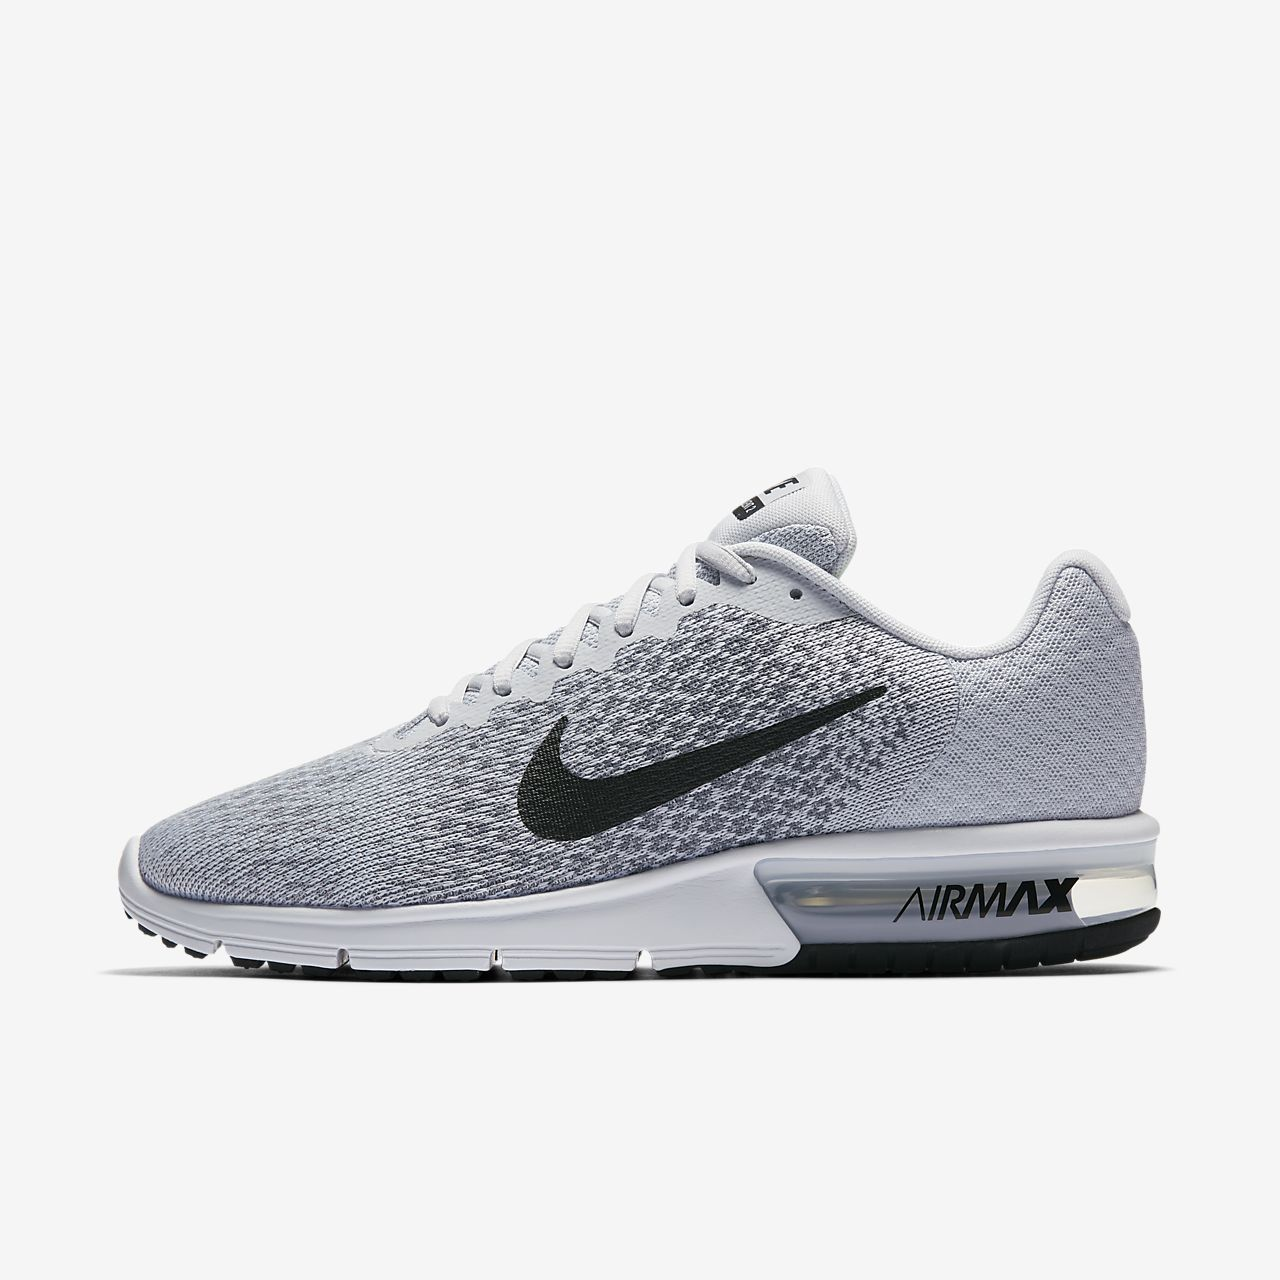 Nike Running Air Max Sequent Trainers In Grey And Blue cheap sale with mastercard cheap sale reliable vHrRo4Kw